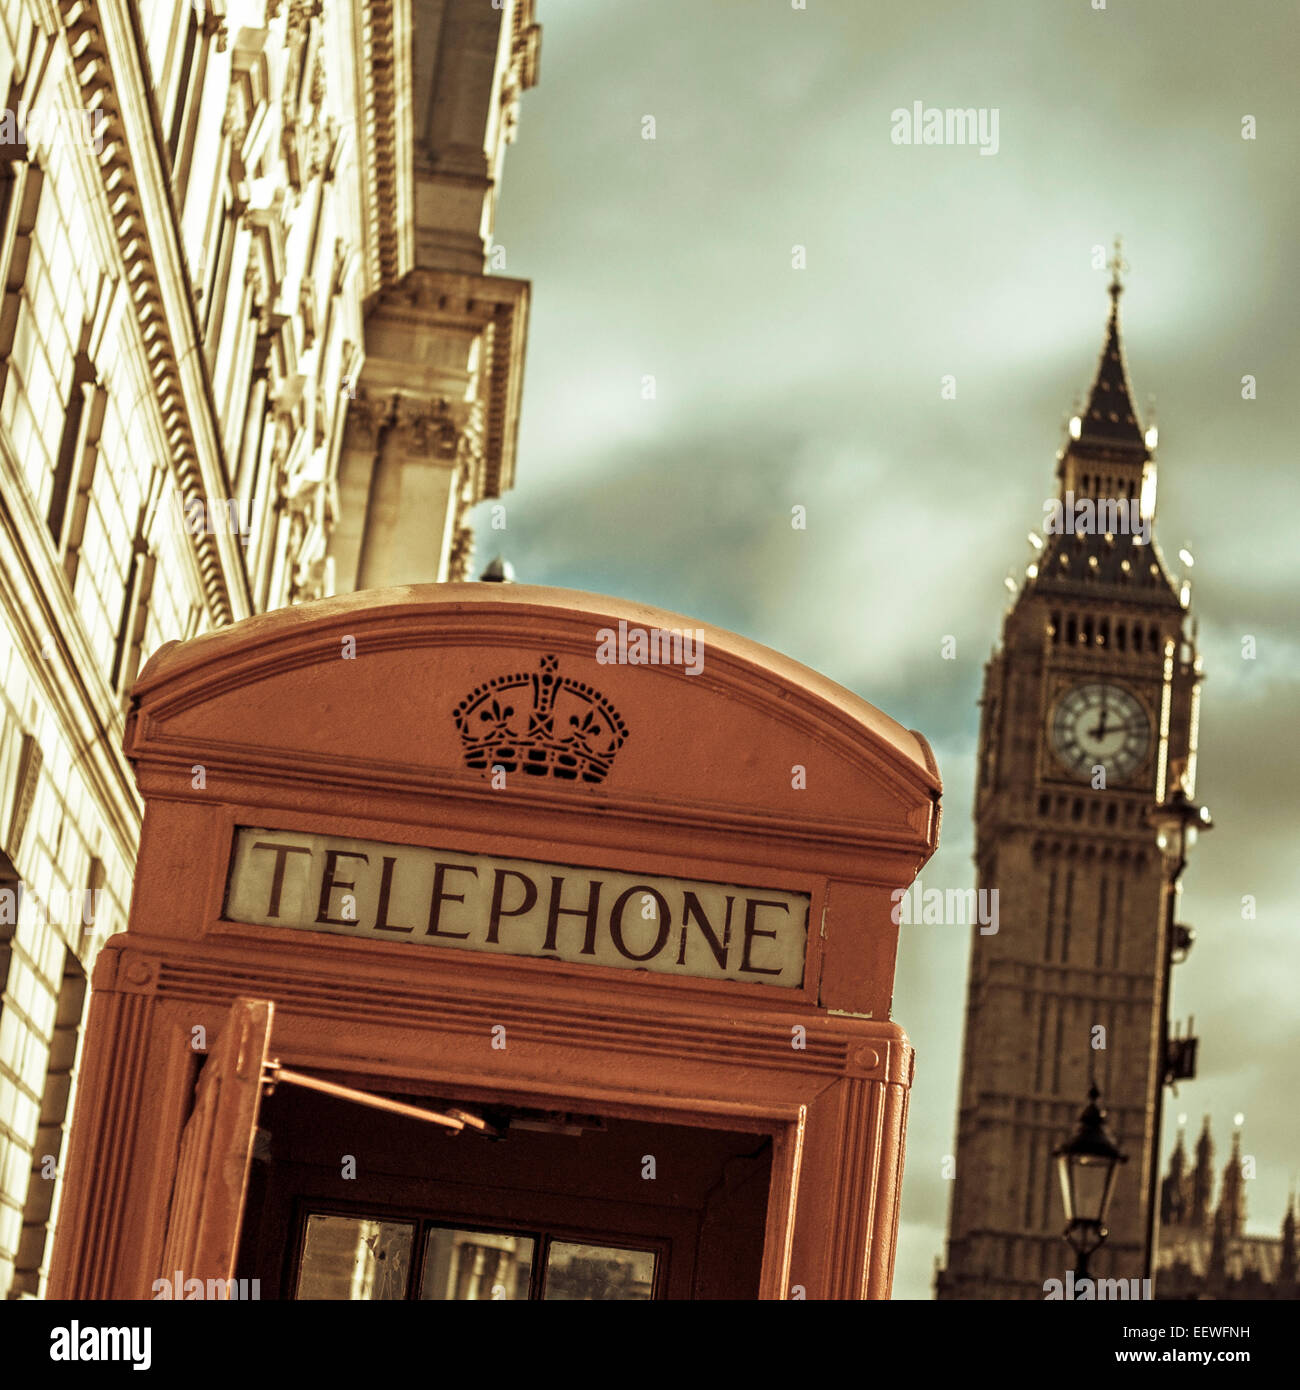 a view of a classic red telephone booth and the Big Ben in the background, in London, United Kingdom, with a filter - Stock Image